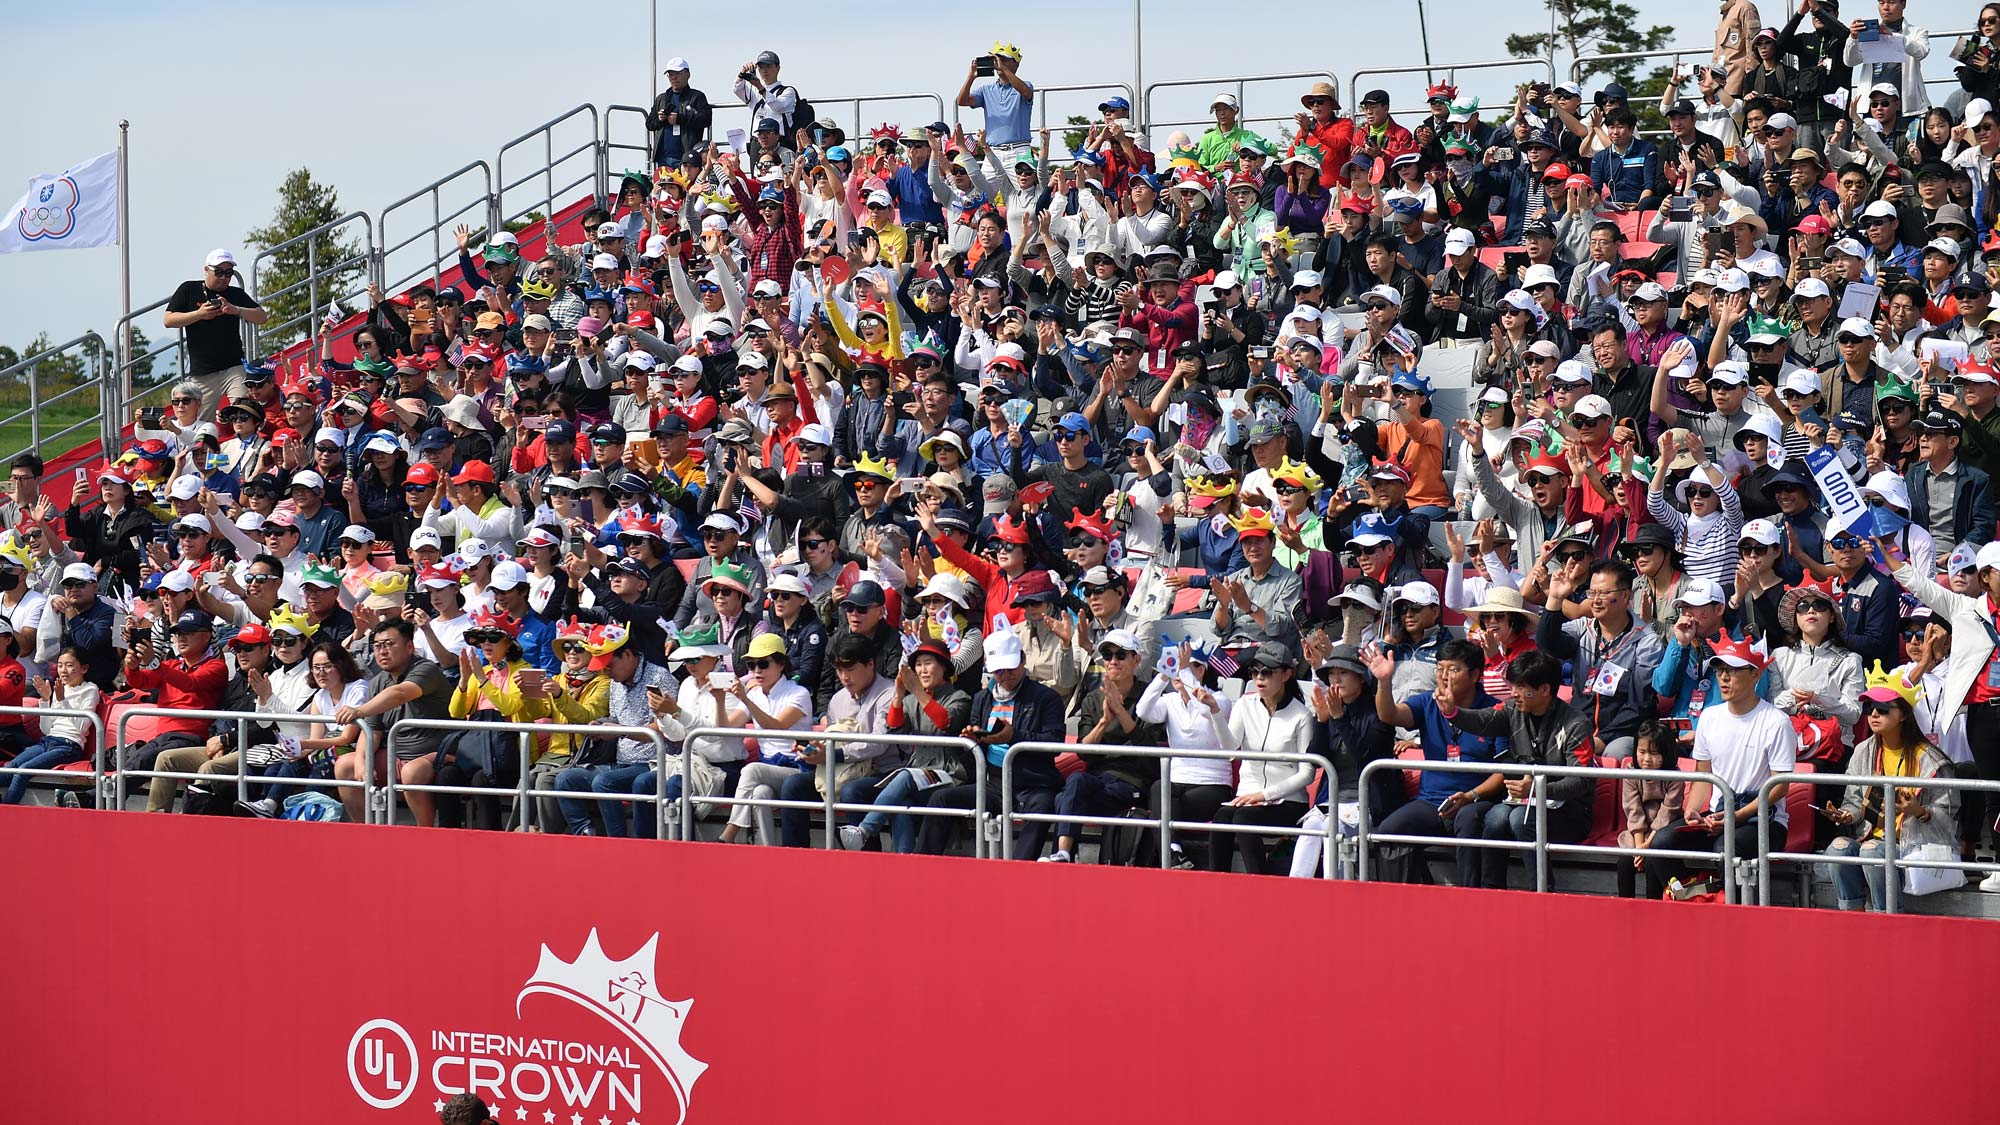 Fans watch on the stand on day four of the UL International Crown